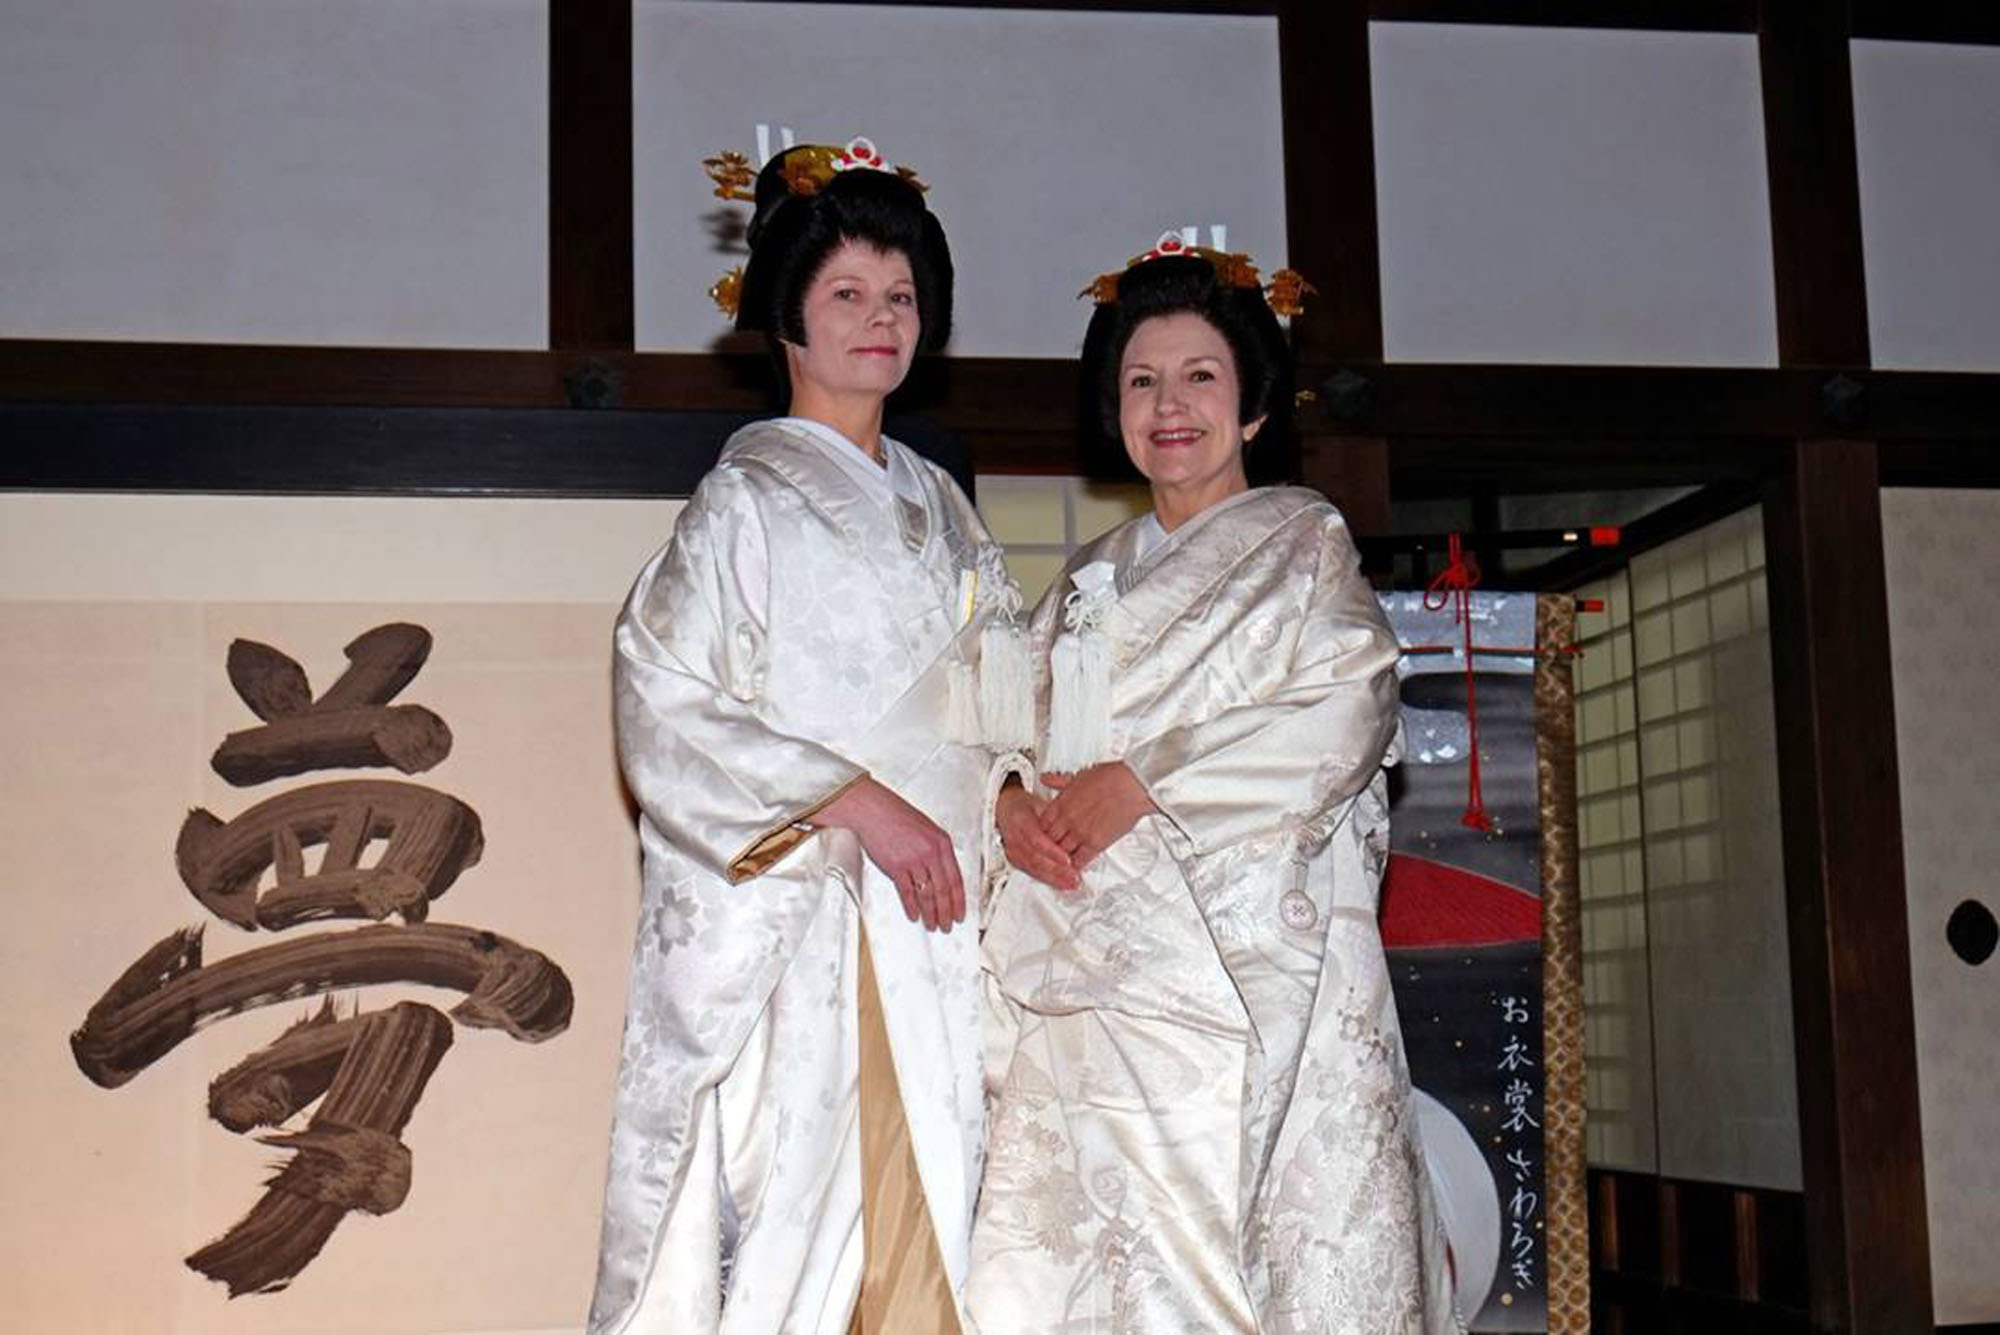 "The ""Kitsune no Yomeiri"" (Wedding Parade of the Foxes), featuring women wearing white kimono and made up to look like foxes, is currently underway in Kyoto. Dace Penke (left), the wife of the Latvian ambassador, and Monica Riquetti Ulloa, the wife of the Uruguayan ambassador, pose in kimono at Kodaji Temple on March 12. The event runs through March 21. 